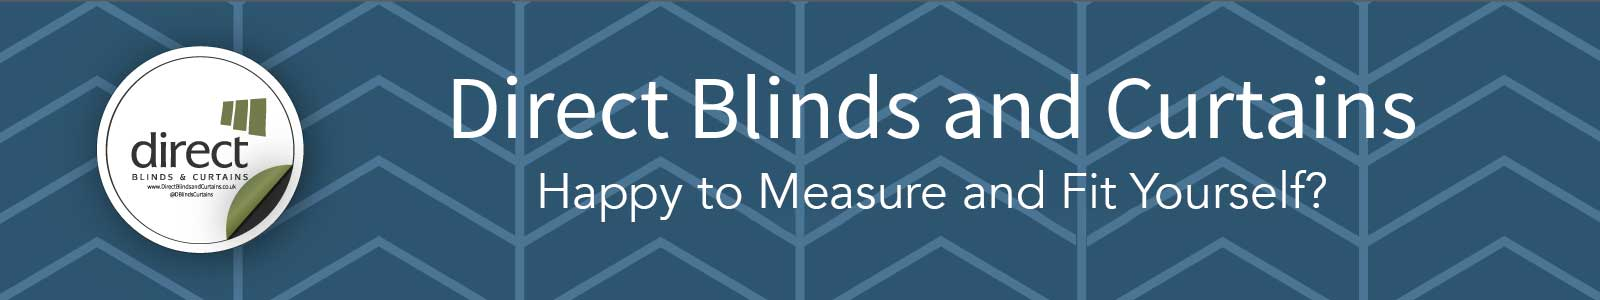 Direct Blinds and Curtains